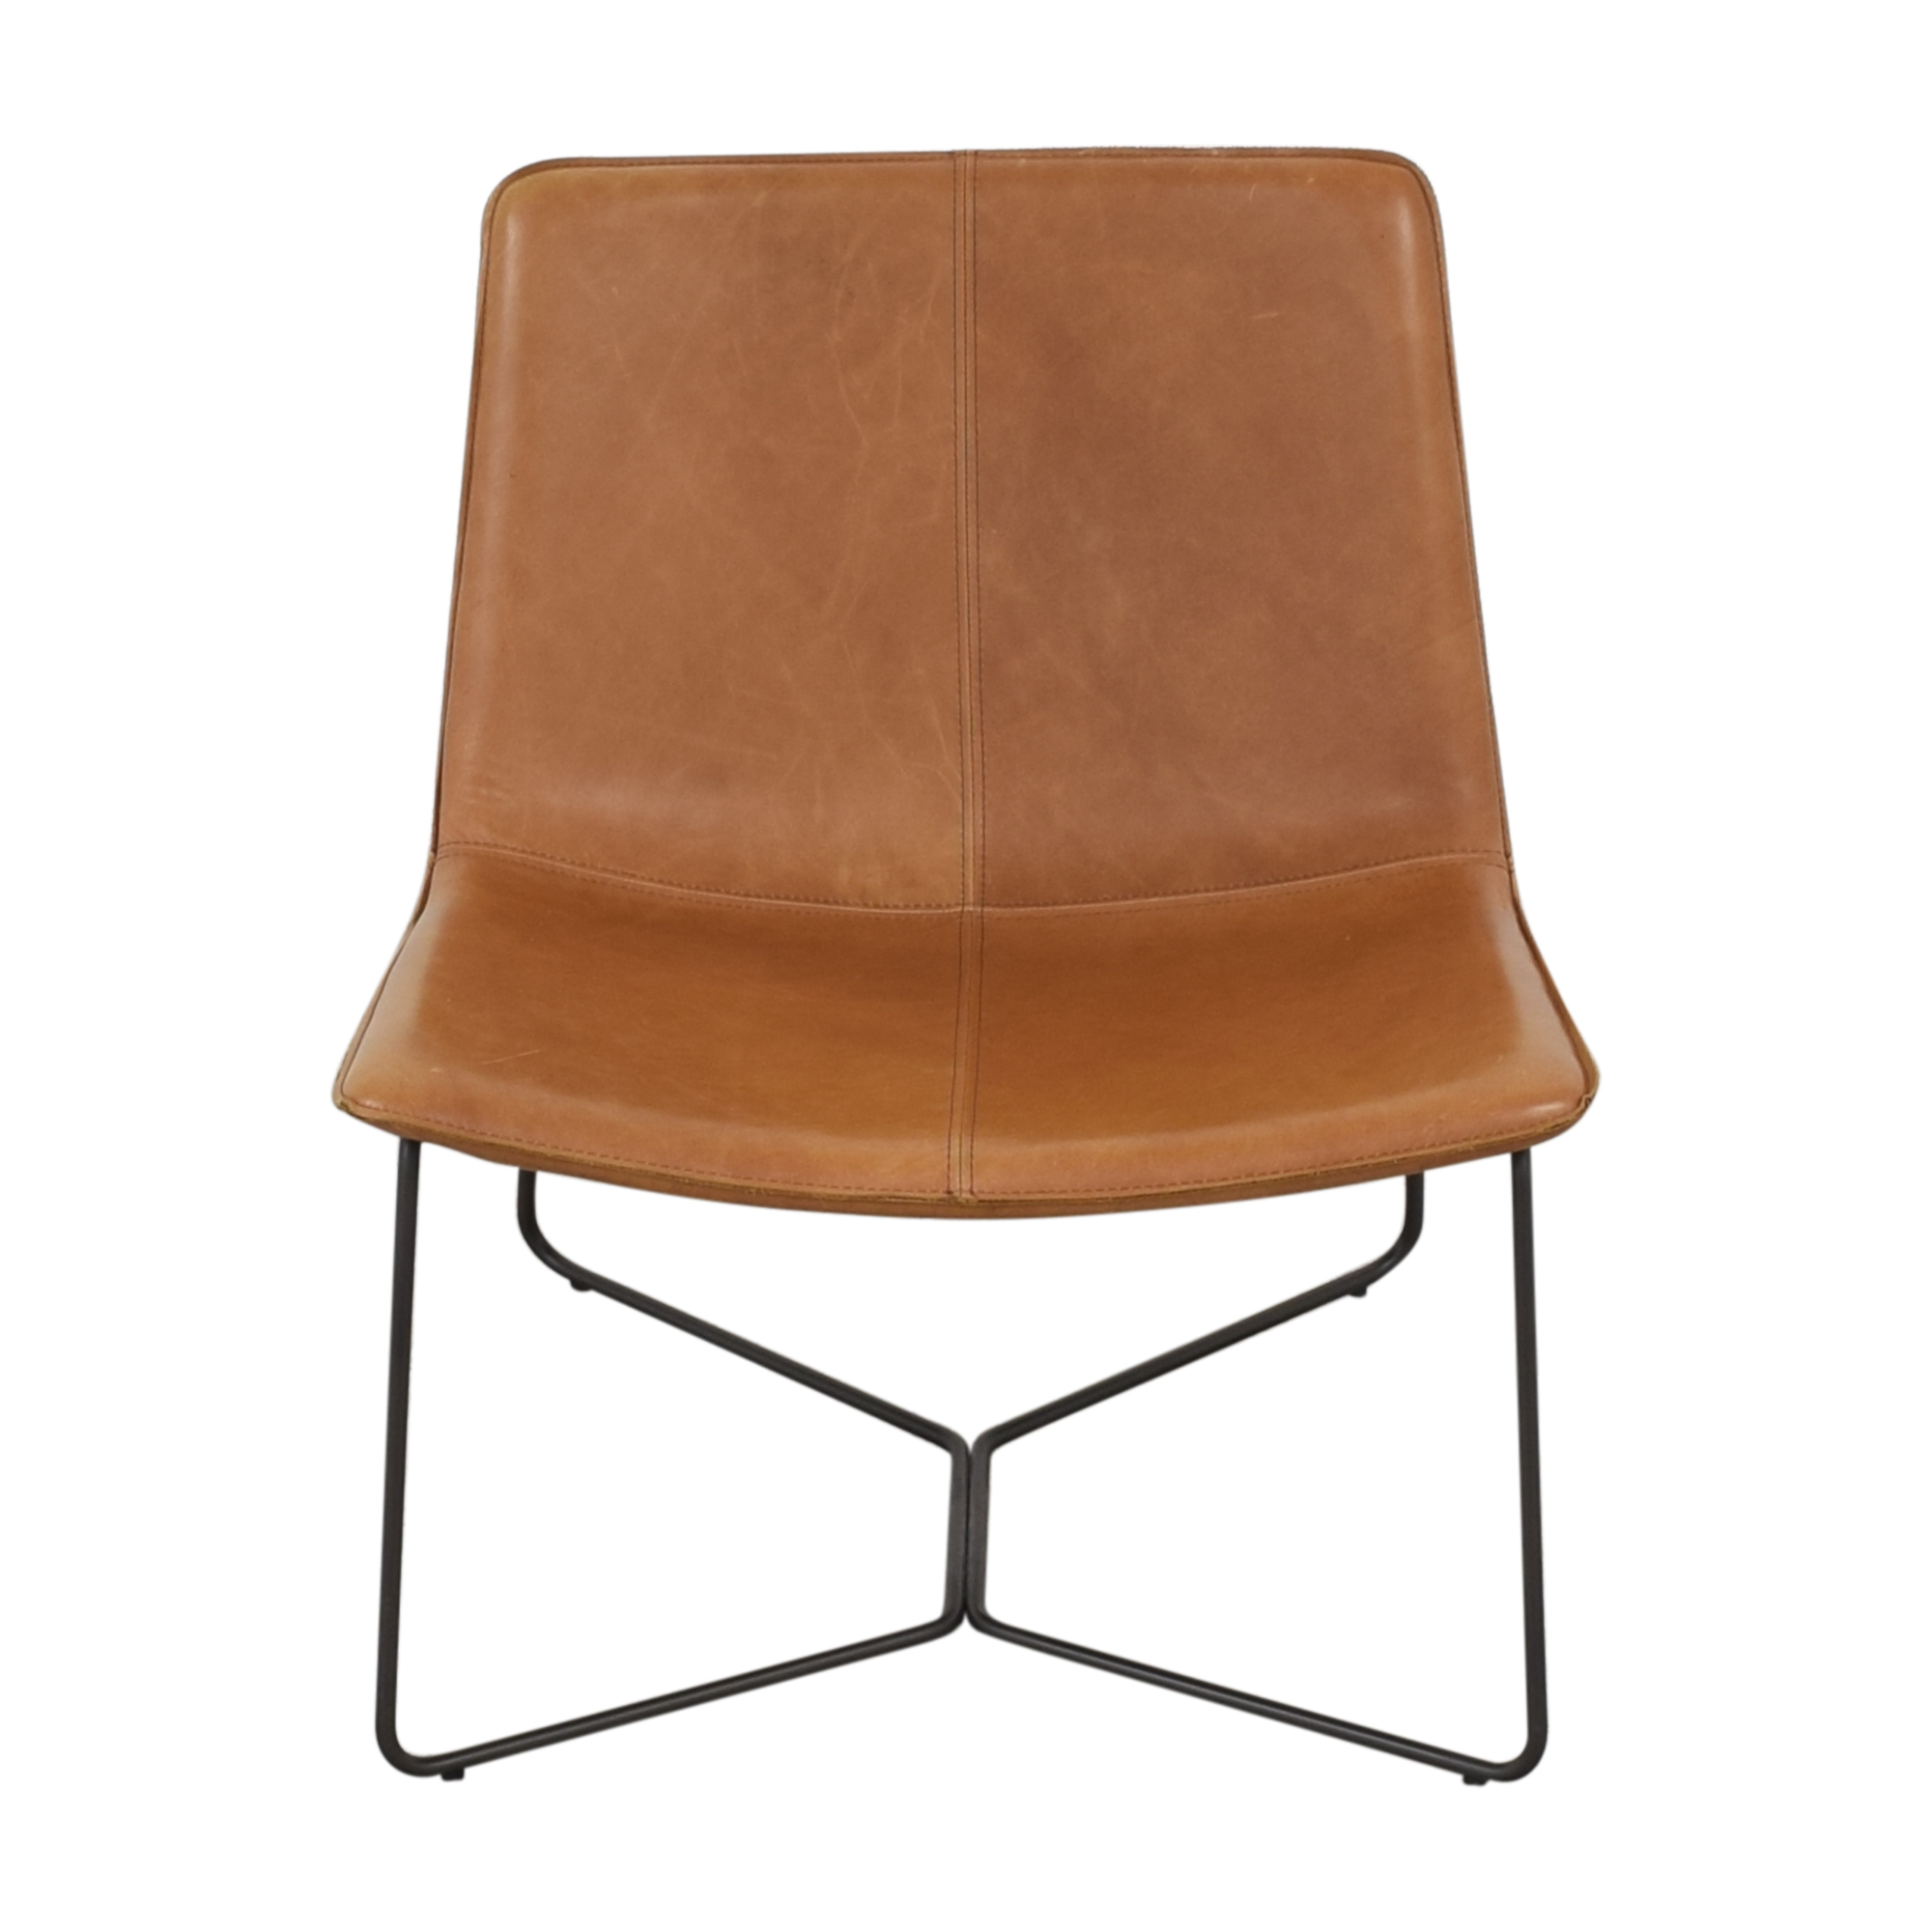 West Elm West Elm Slope Leather Lounge Chair brown and black